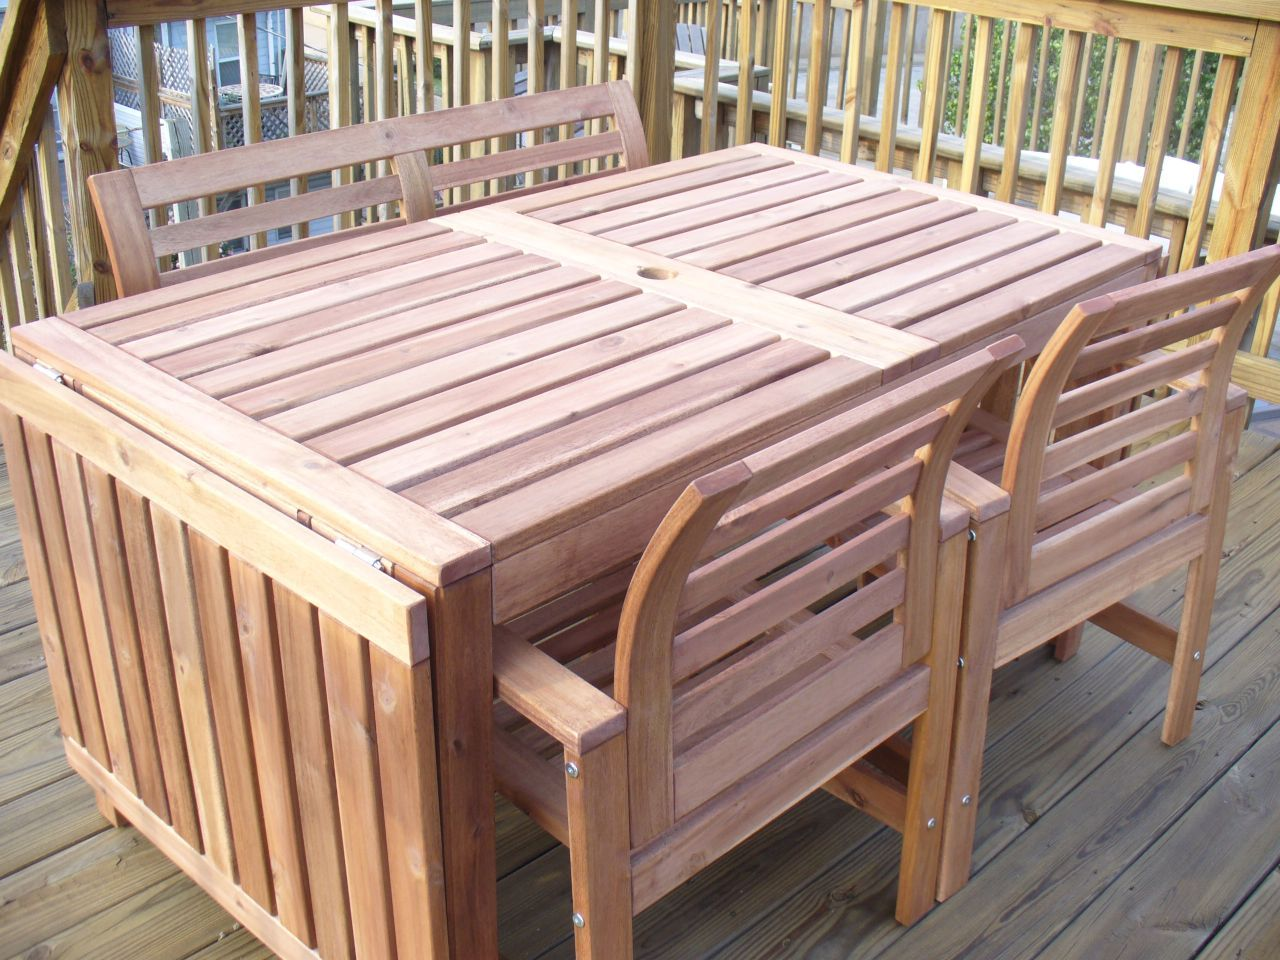 ikea patio furniture. Preview Ikea Patio Furniture 2014 For Outdoor : Charming Drop Leaf Table Made Of Wood Are Placed On A Wooden Balcony And There Is R